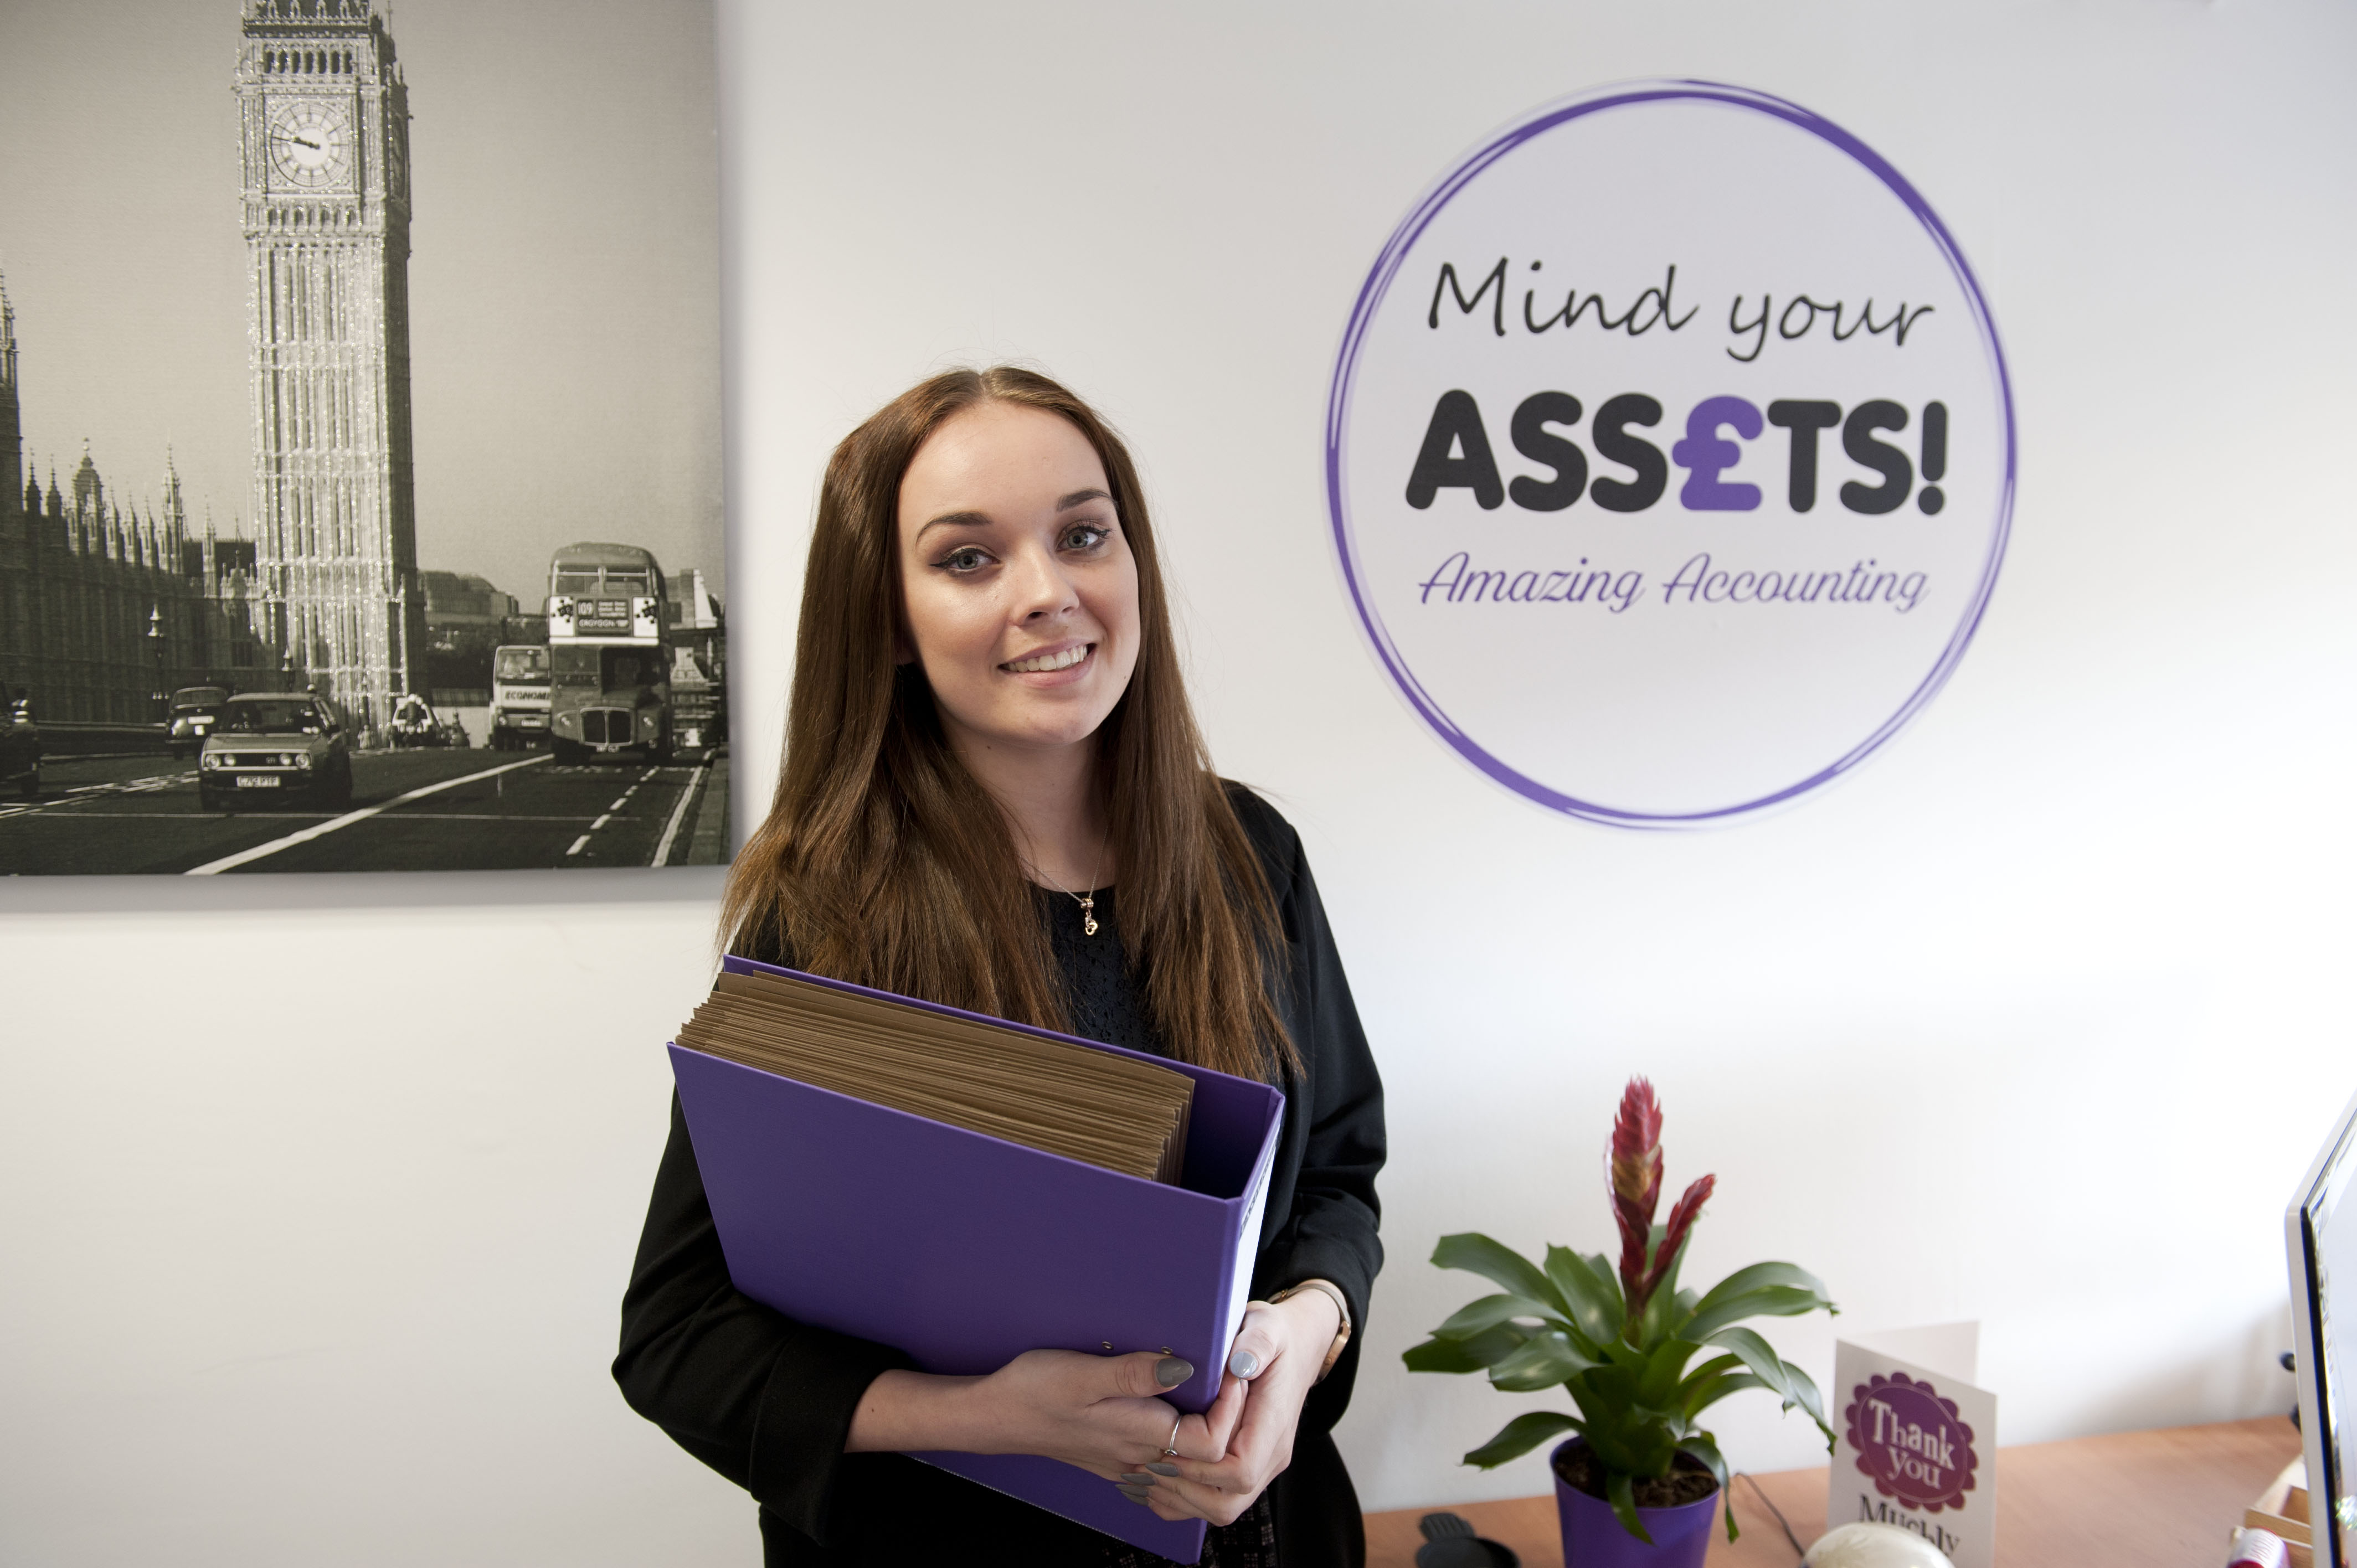 Sheffield College Apprentice Shortlisted For Yorkshire Accountancy Awards